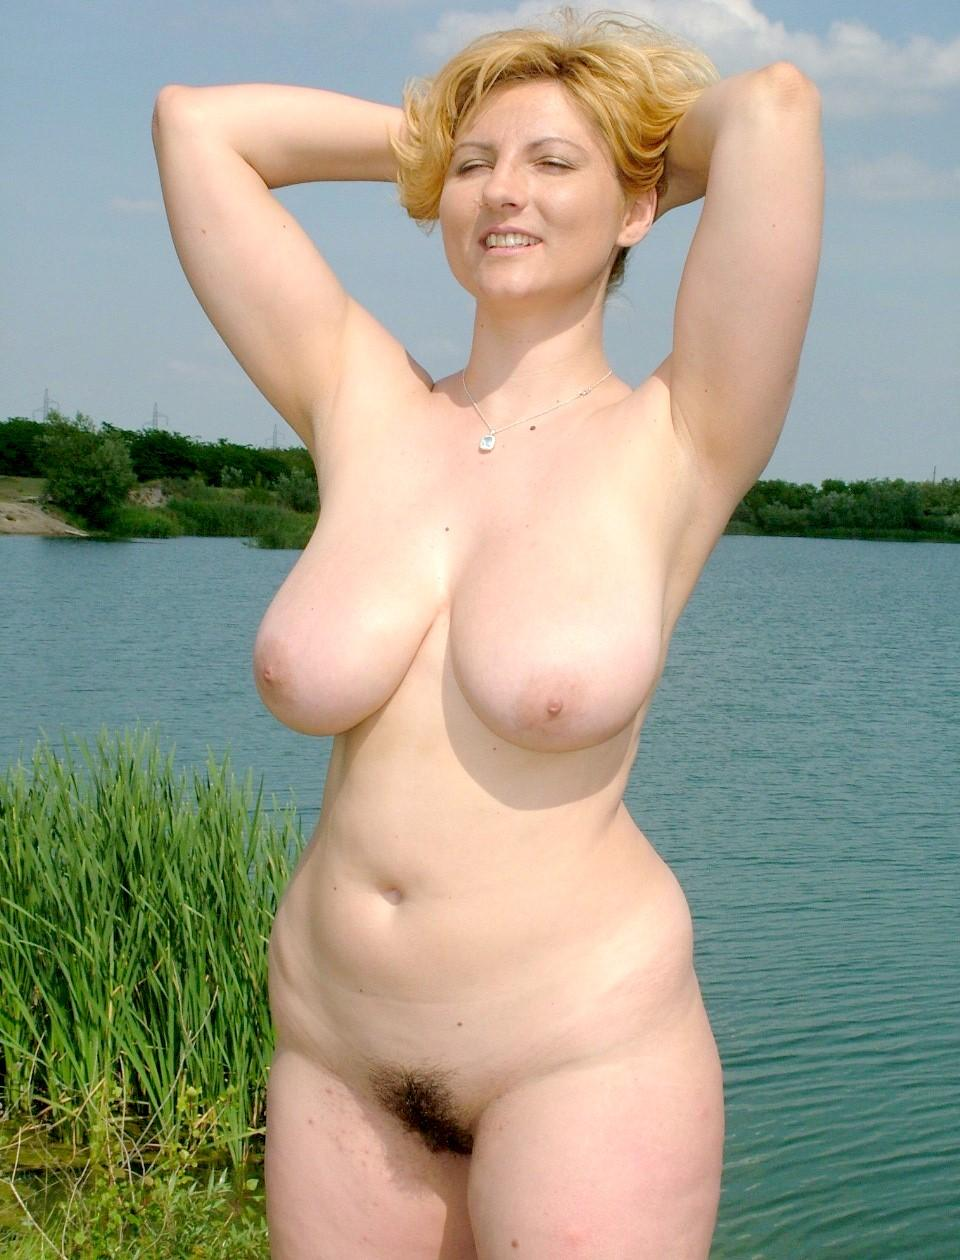 Voluptuous naturist babe revealing her beaver